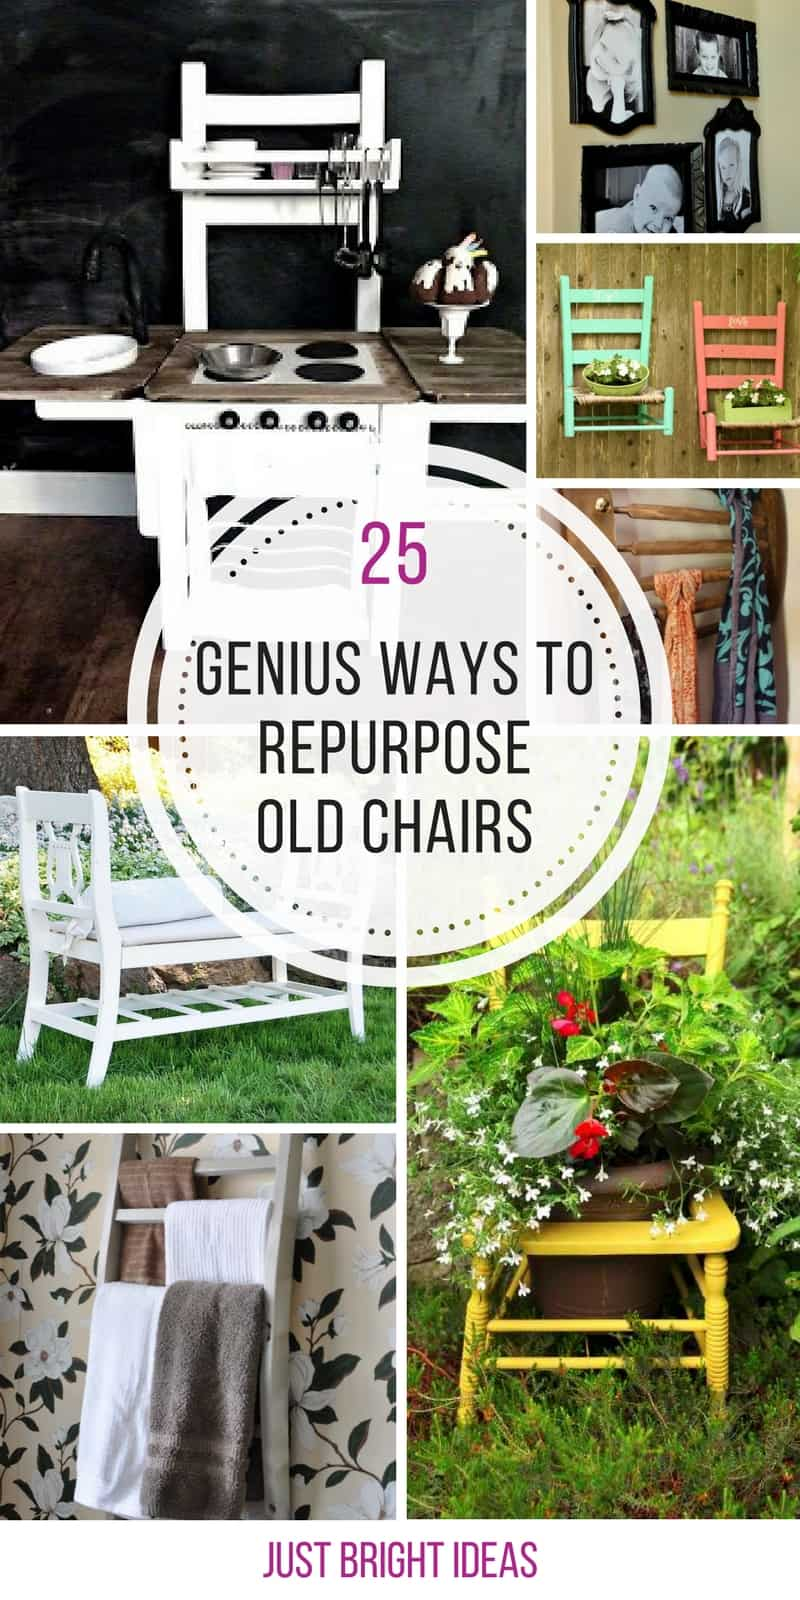 I always wondered how to repurpose old wooden chairs! Thanks for sharing!